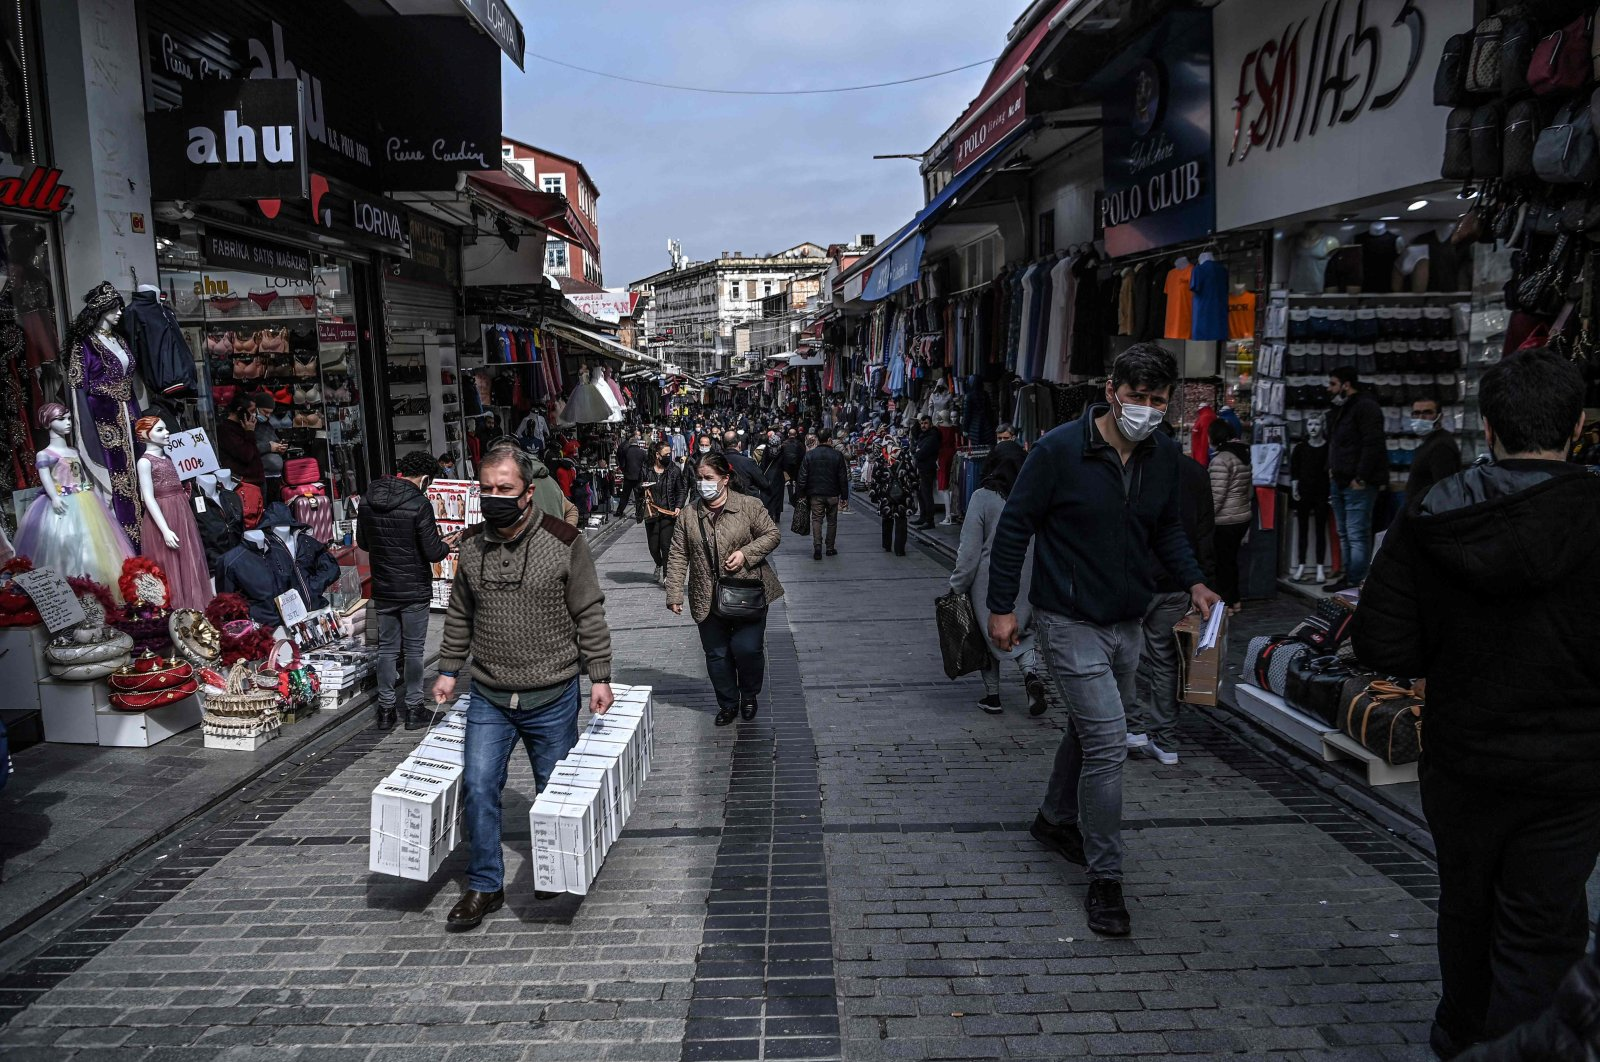 Pedestrians and customers walk past shops in the Mahmutpaşa neighborhood in Istanbul, Turkey, March 22, 2021. (AFP Photo)